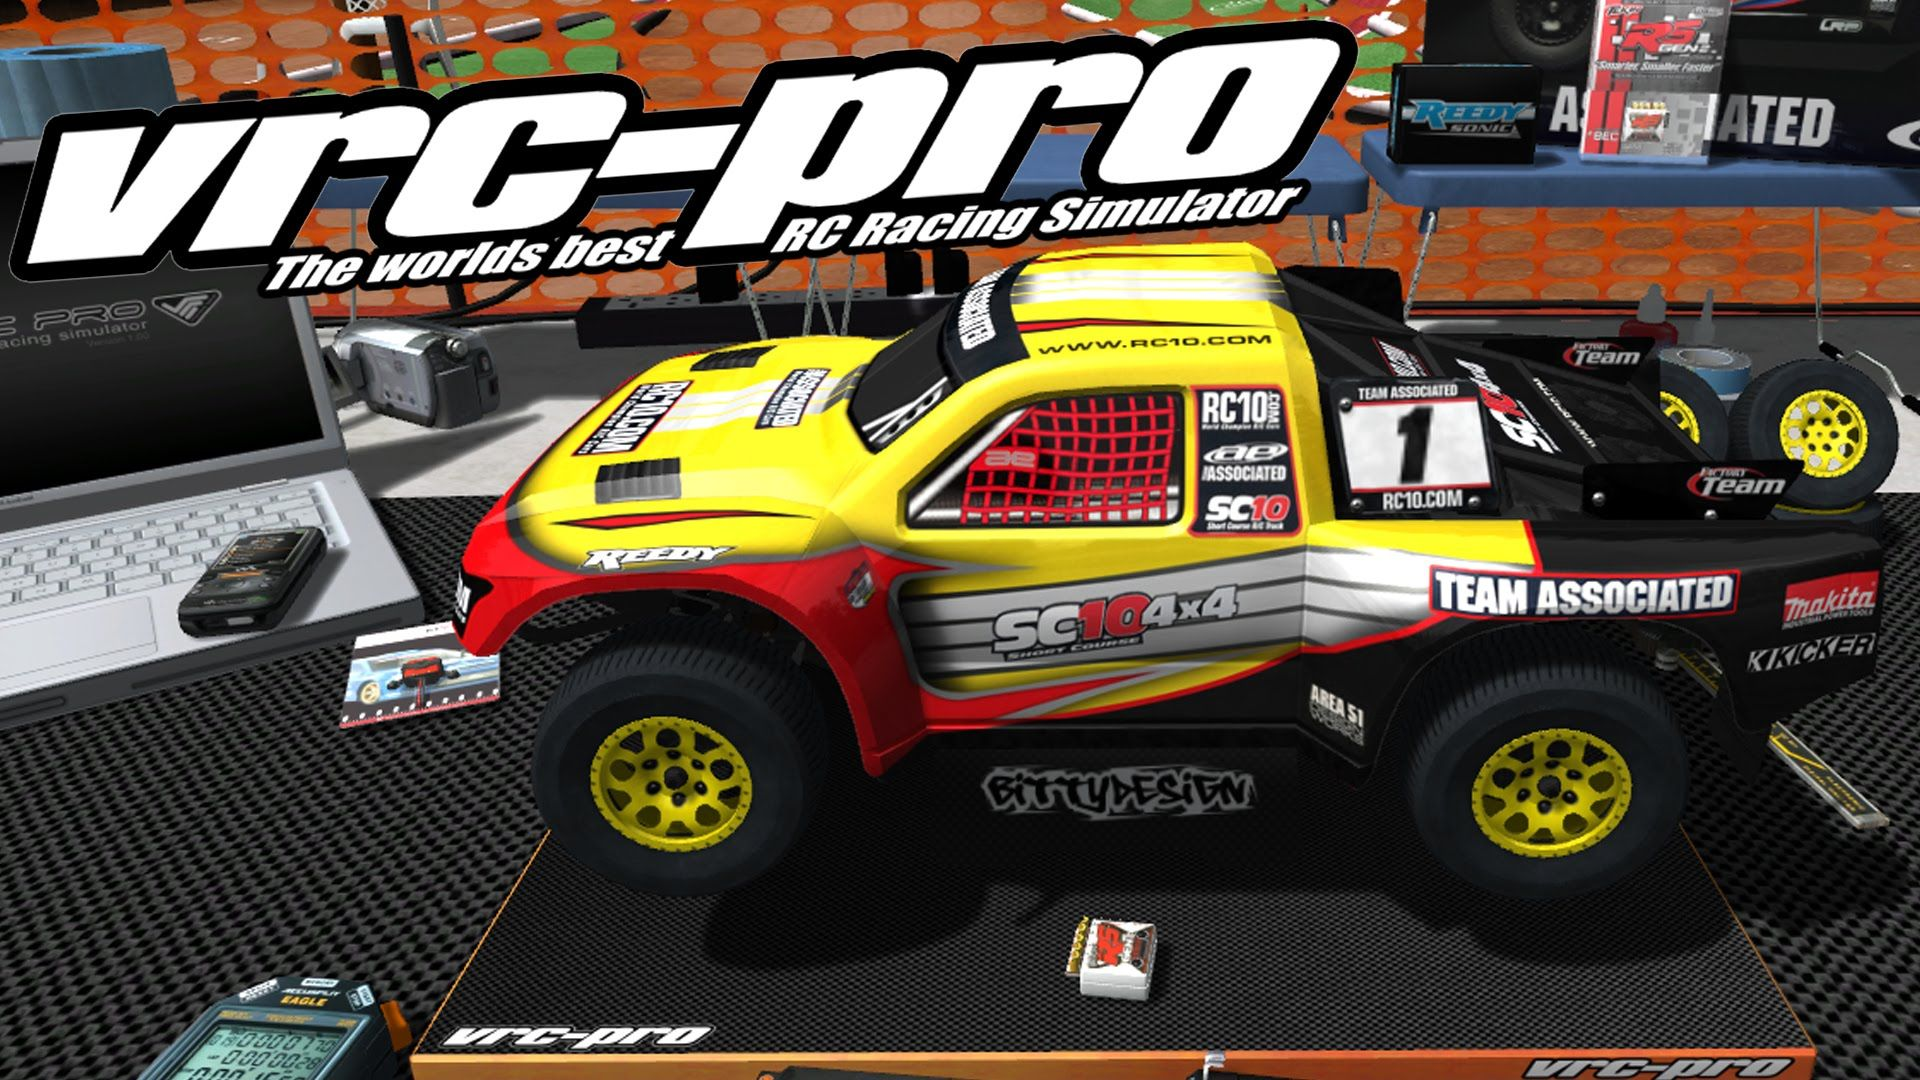 Check'n Out.. VRC Pro - The Best R/C Racing Simulator